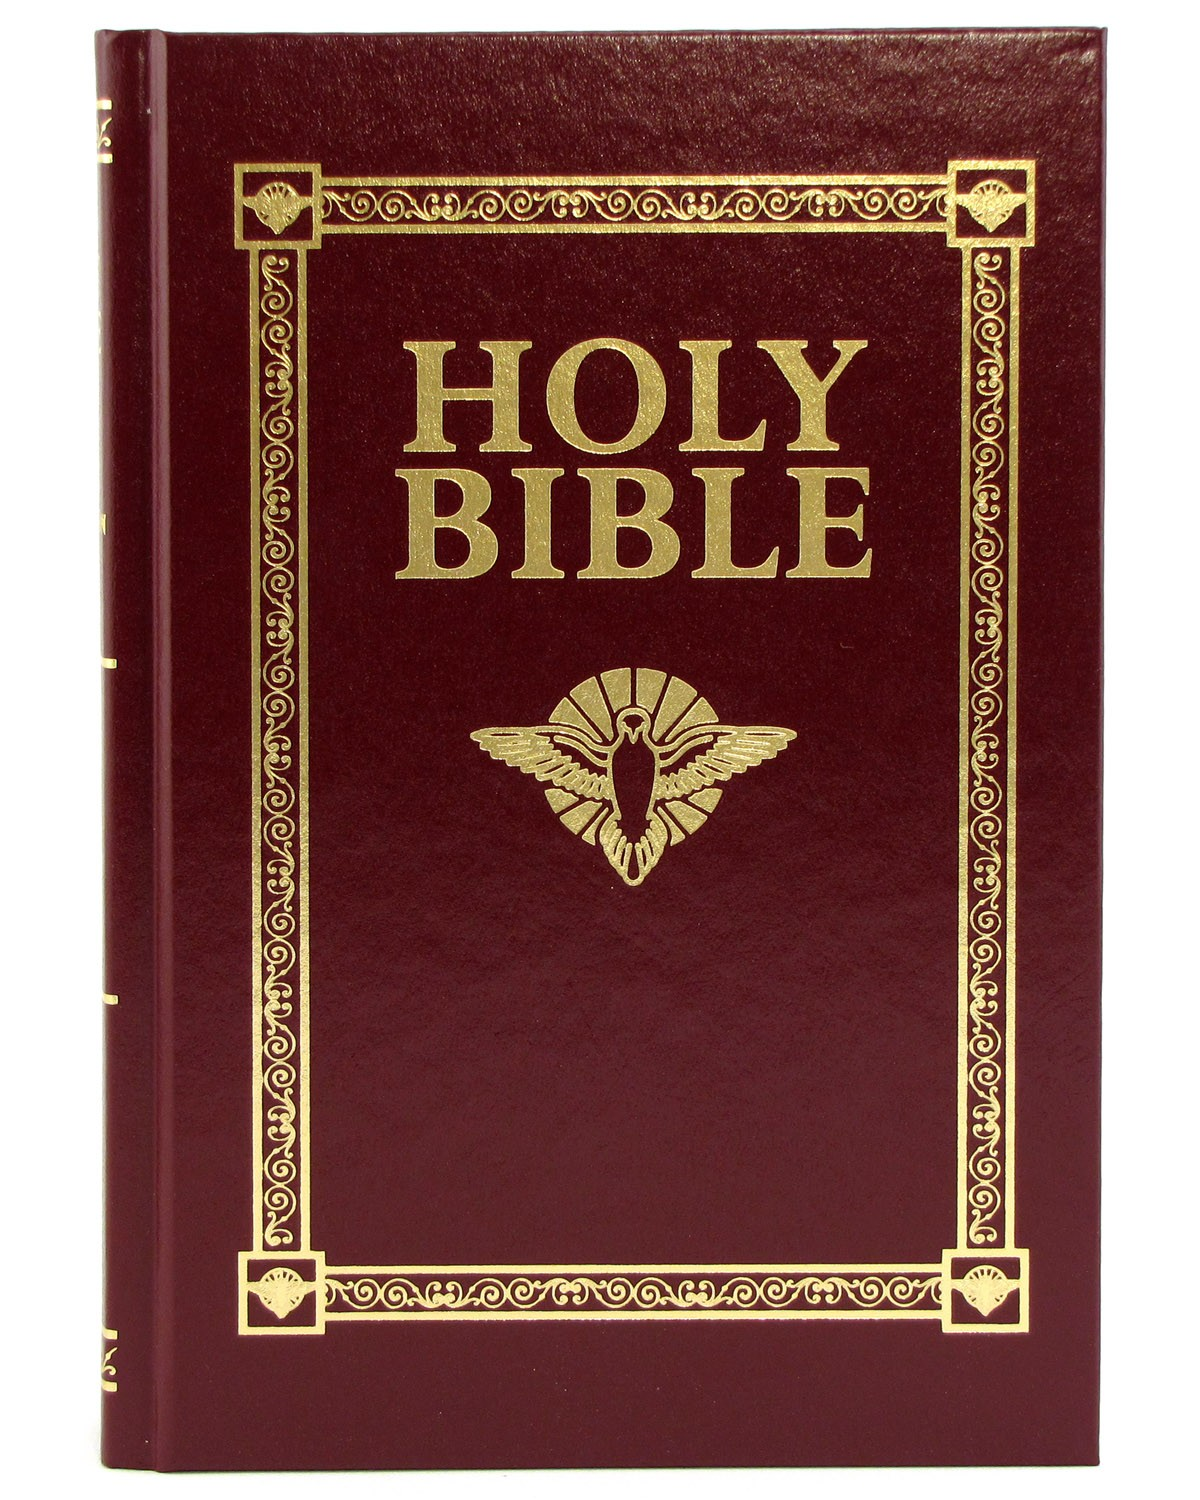 Holy Bible Confirmation Gift Edition. This hardbound, gold-embossed Douay-Rheims Bible features stories on the lives of